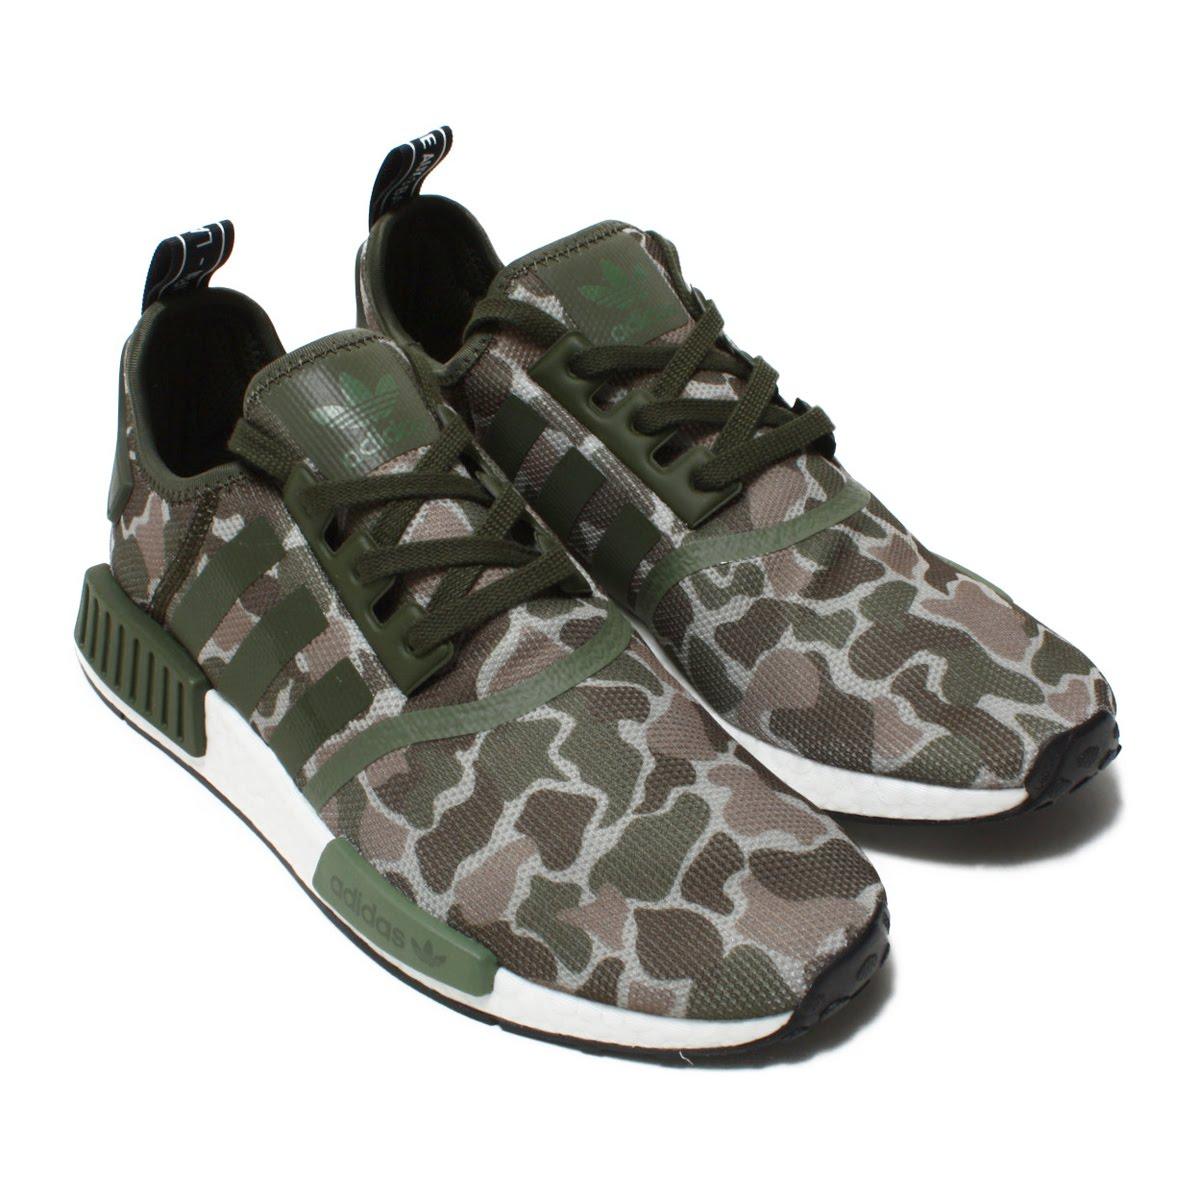 422f73d1e8c3a I blend the style of the outdoor gear with the origin of running shoes of  the 80s. NMD that wore polish and modishness. Mid sole superior in knit  upper ...